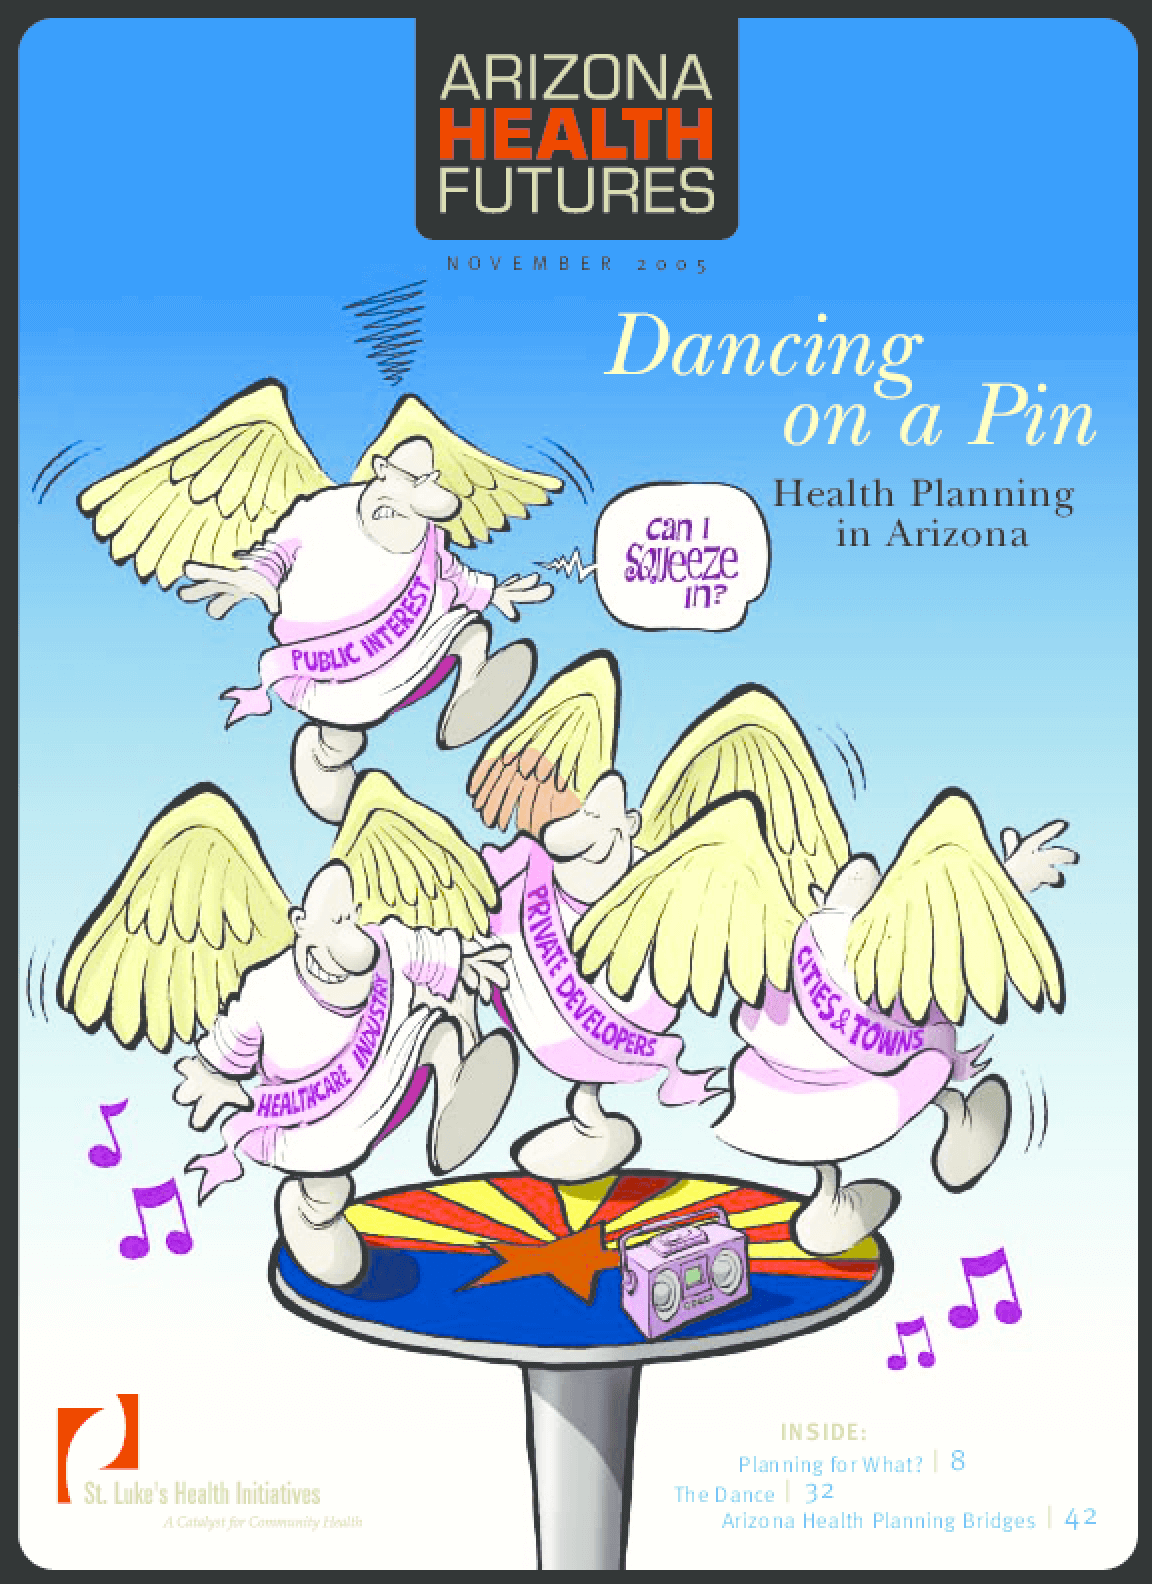 Dancing on a Pin: Health Planning in Arizona